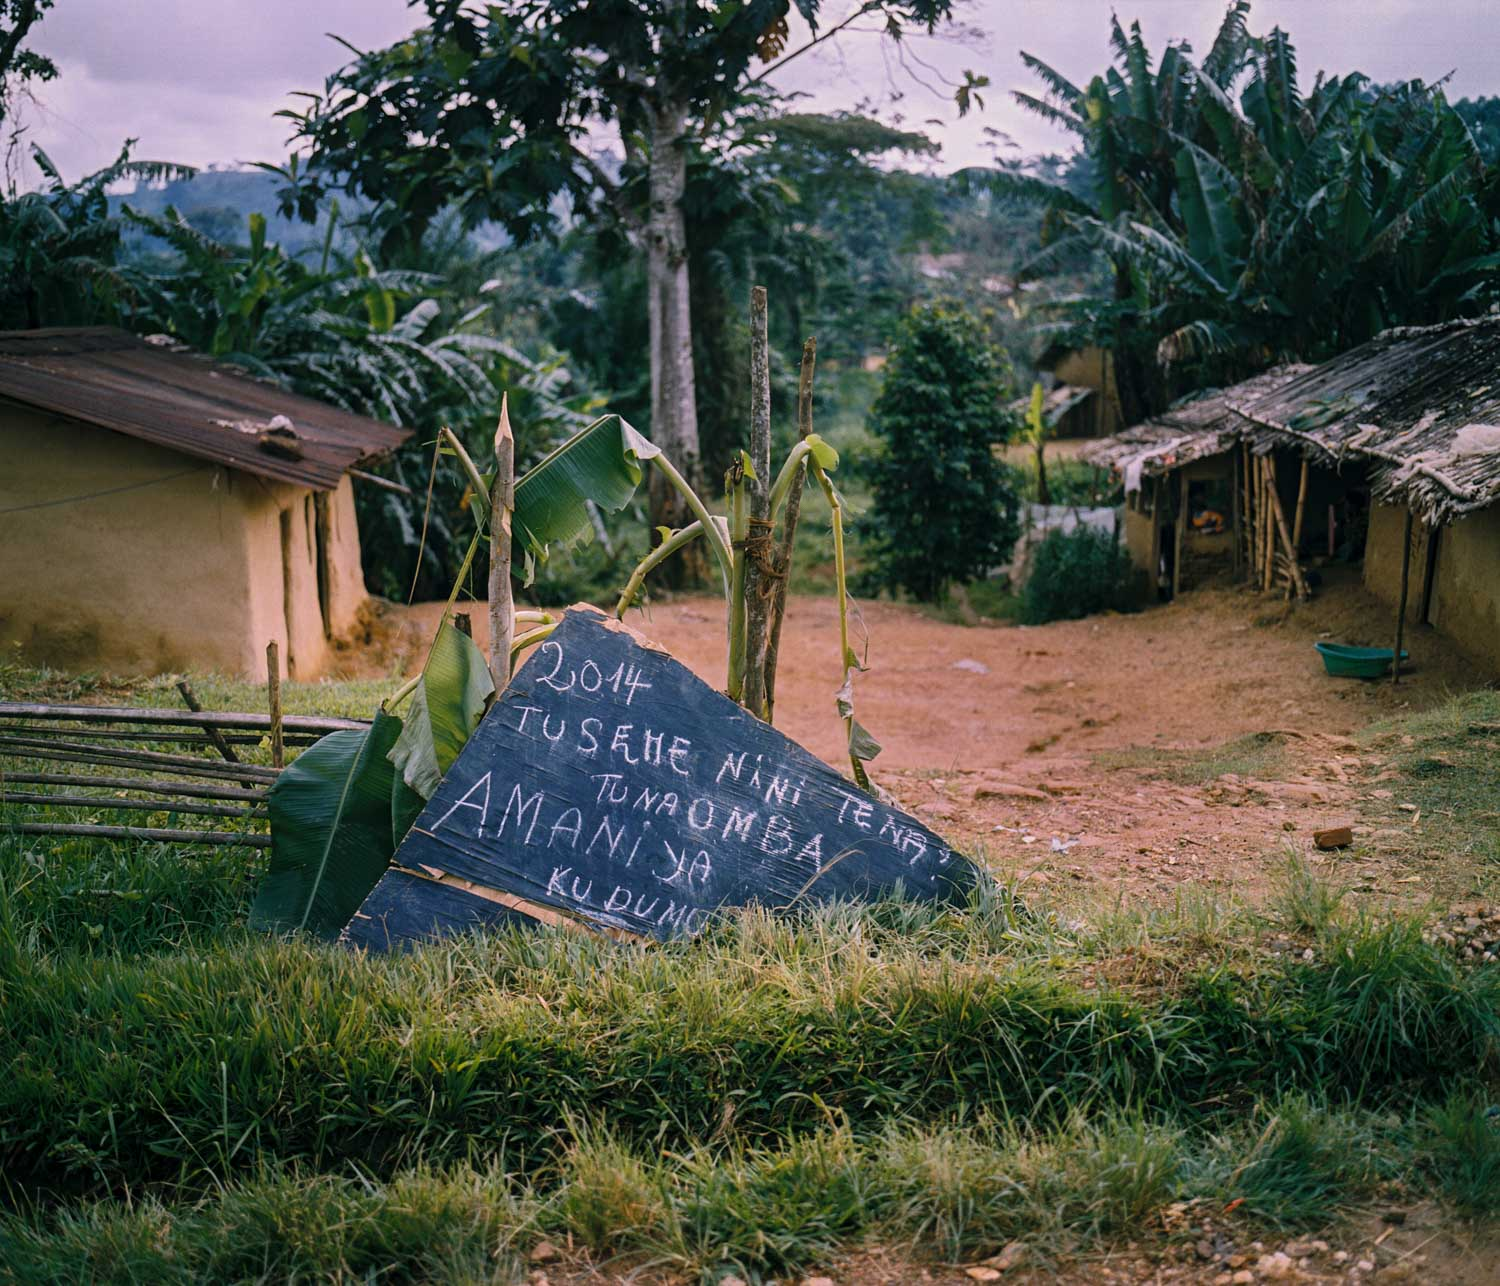 """On New Year's Eve, a roadside sign reads, """"2014, what shall we say again? We ask for lasting peace.""""Dec. 31, 2013. Lulingu, South Kivu, Democratic Republic of the Congo."""